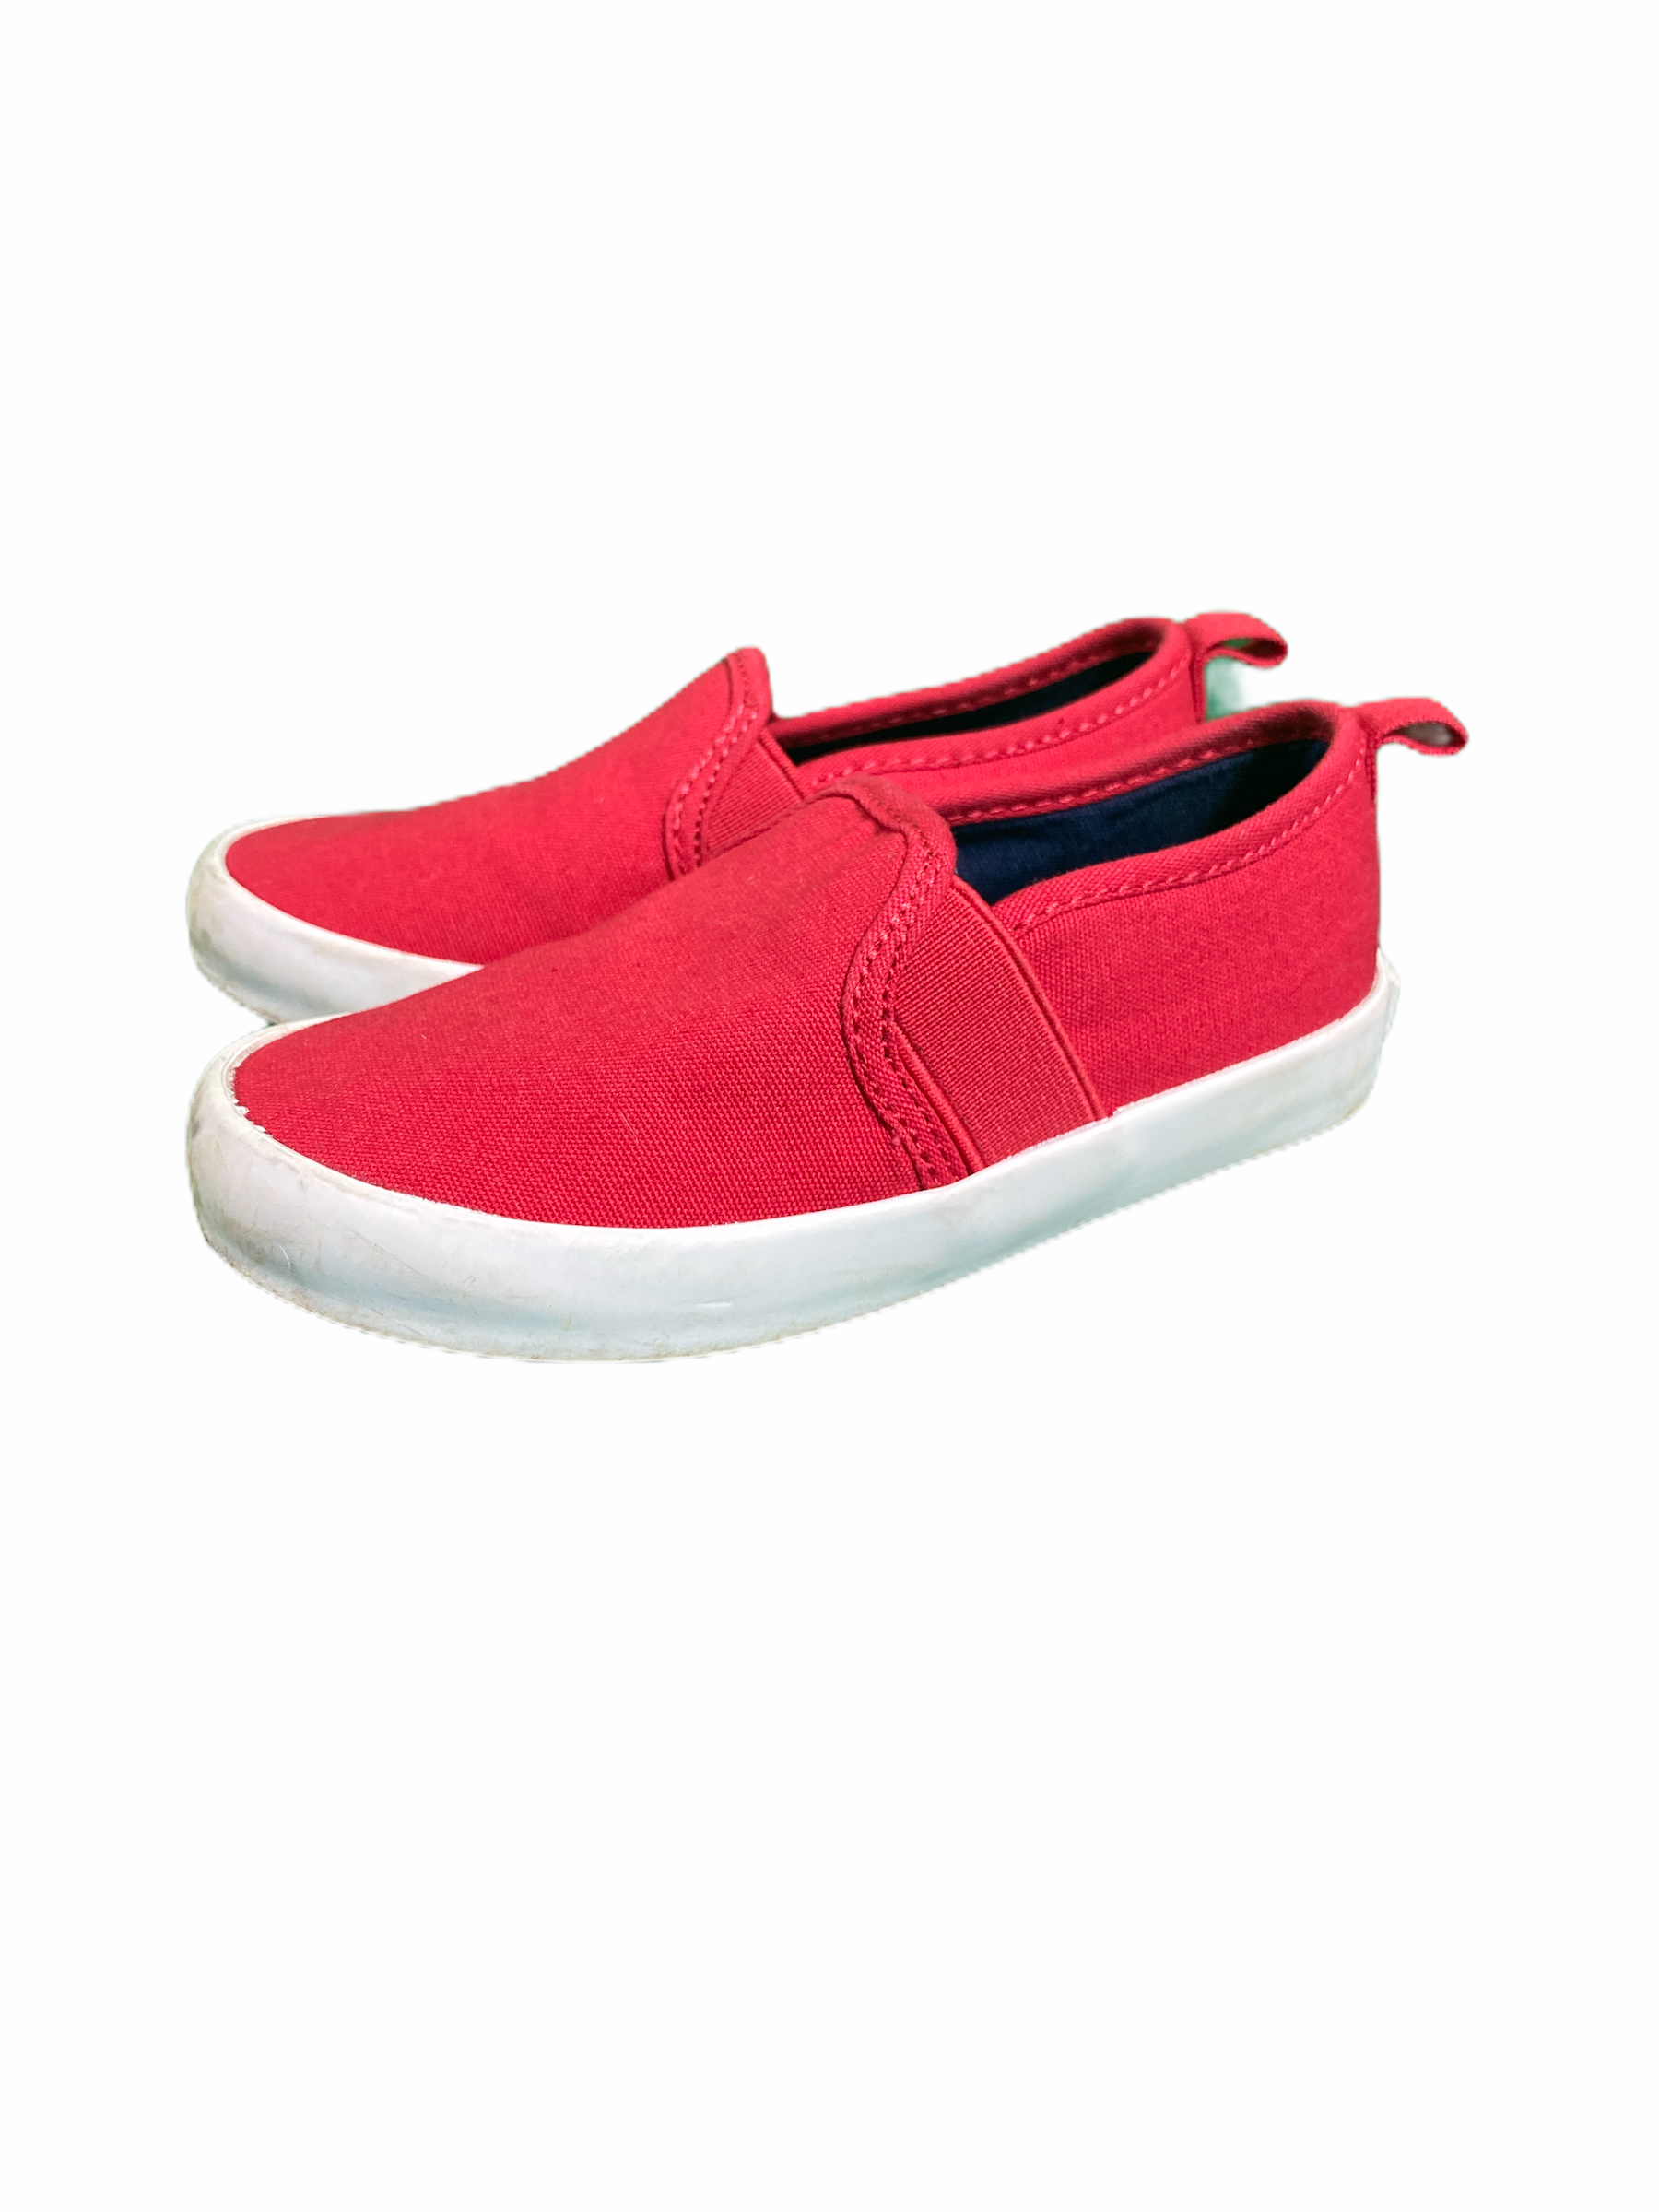 Old Navy Red Slip Ons (Size 8)